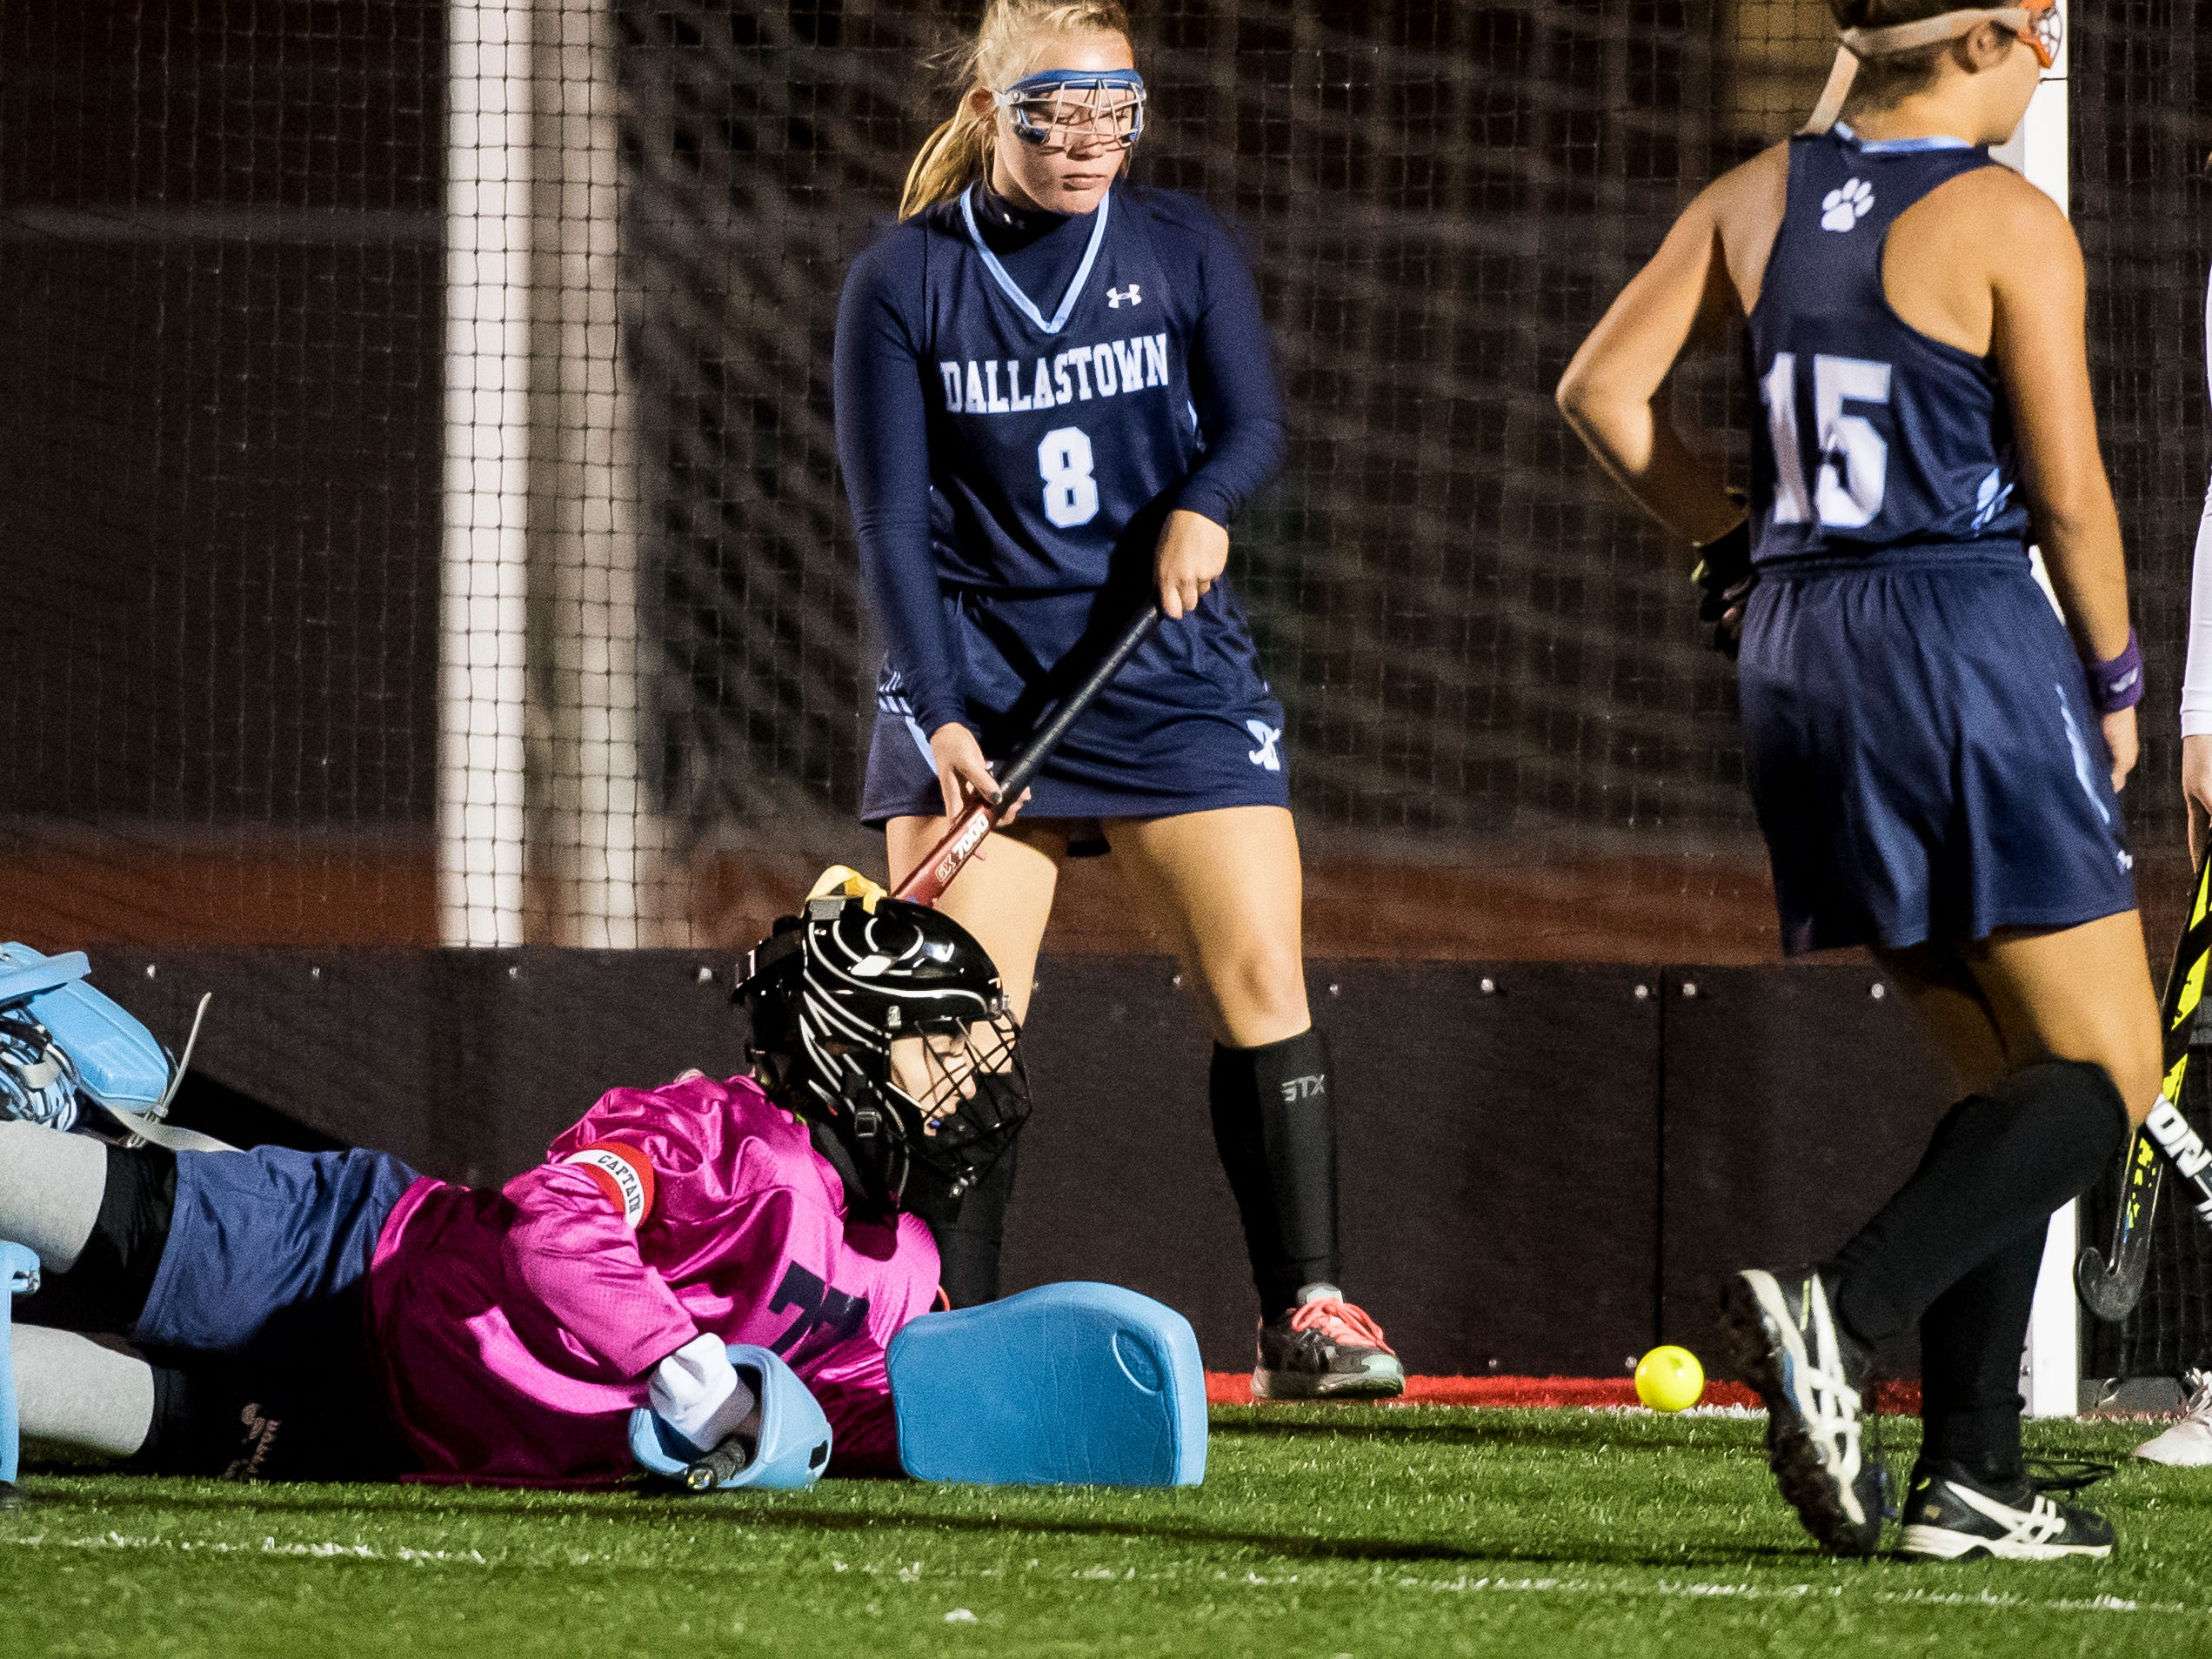 Dallastown goal keeper Piper Glattacker dives to deflect a Central York shot during a YAIAA tournament semifinal game on Thursday, October 18, 2018. The Wildcats fell 2-0.